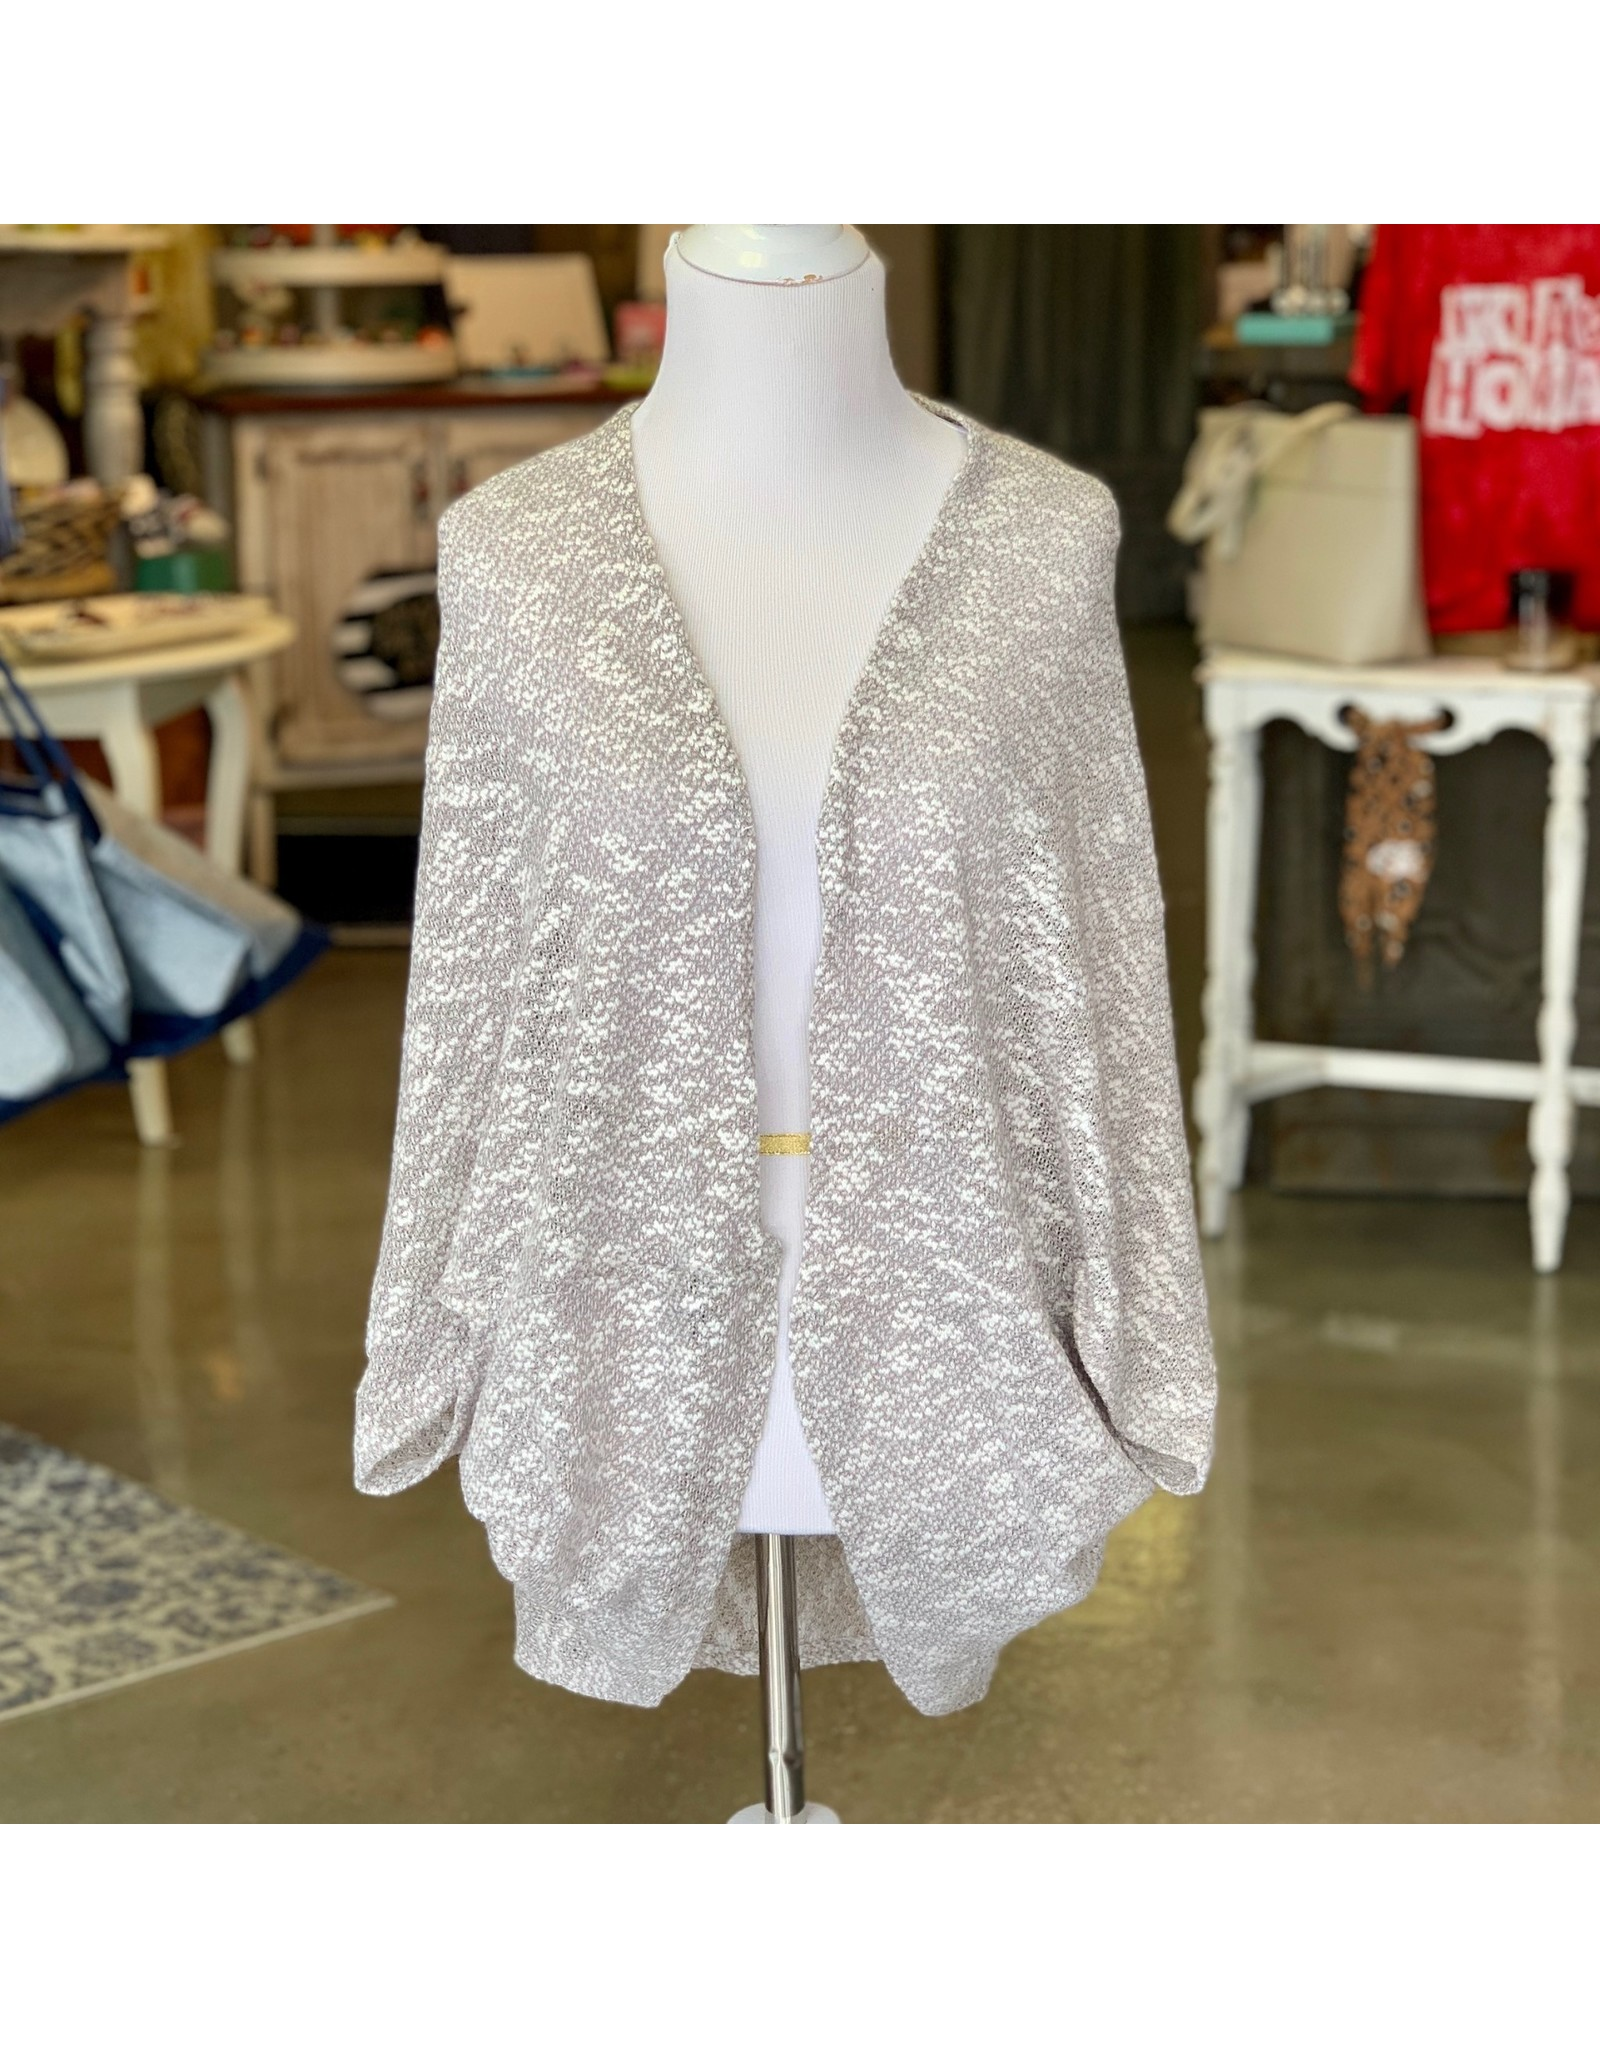 Justin&Taylor Gray Speckled Cardigan O/S